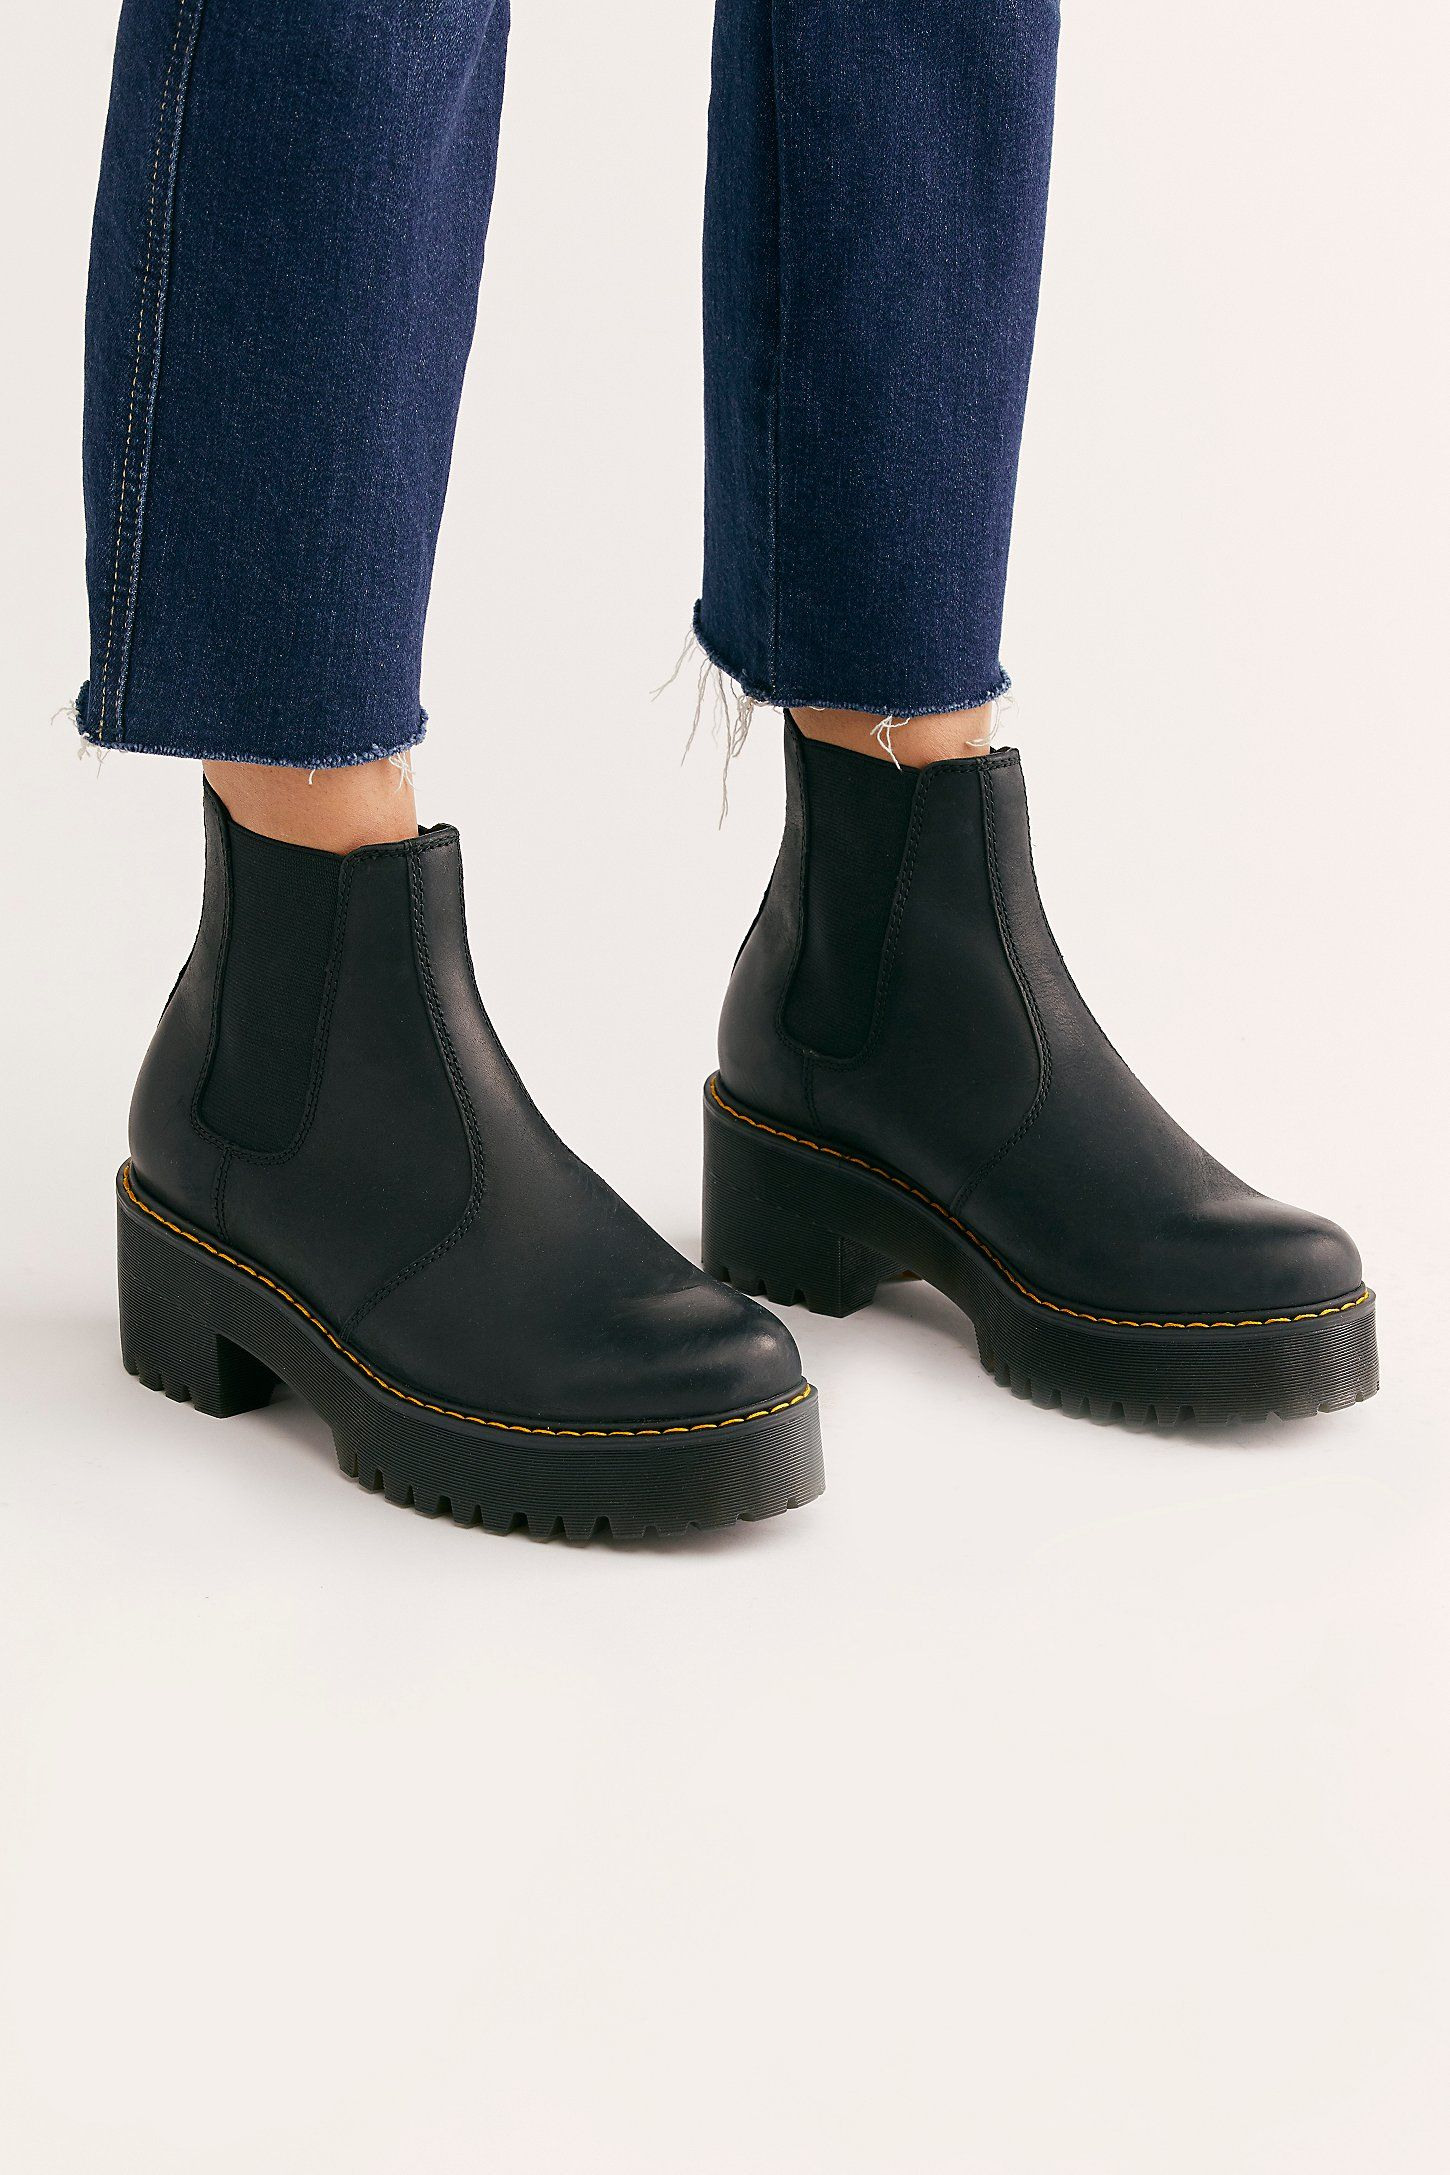 Dr Martens Rometty Chelsea Boots Boots Boots Outfit Chelsea Boots